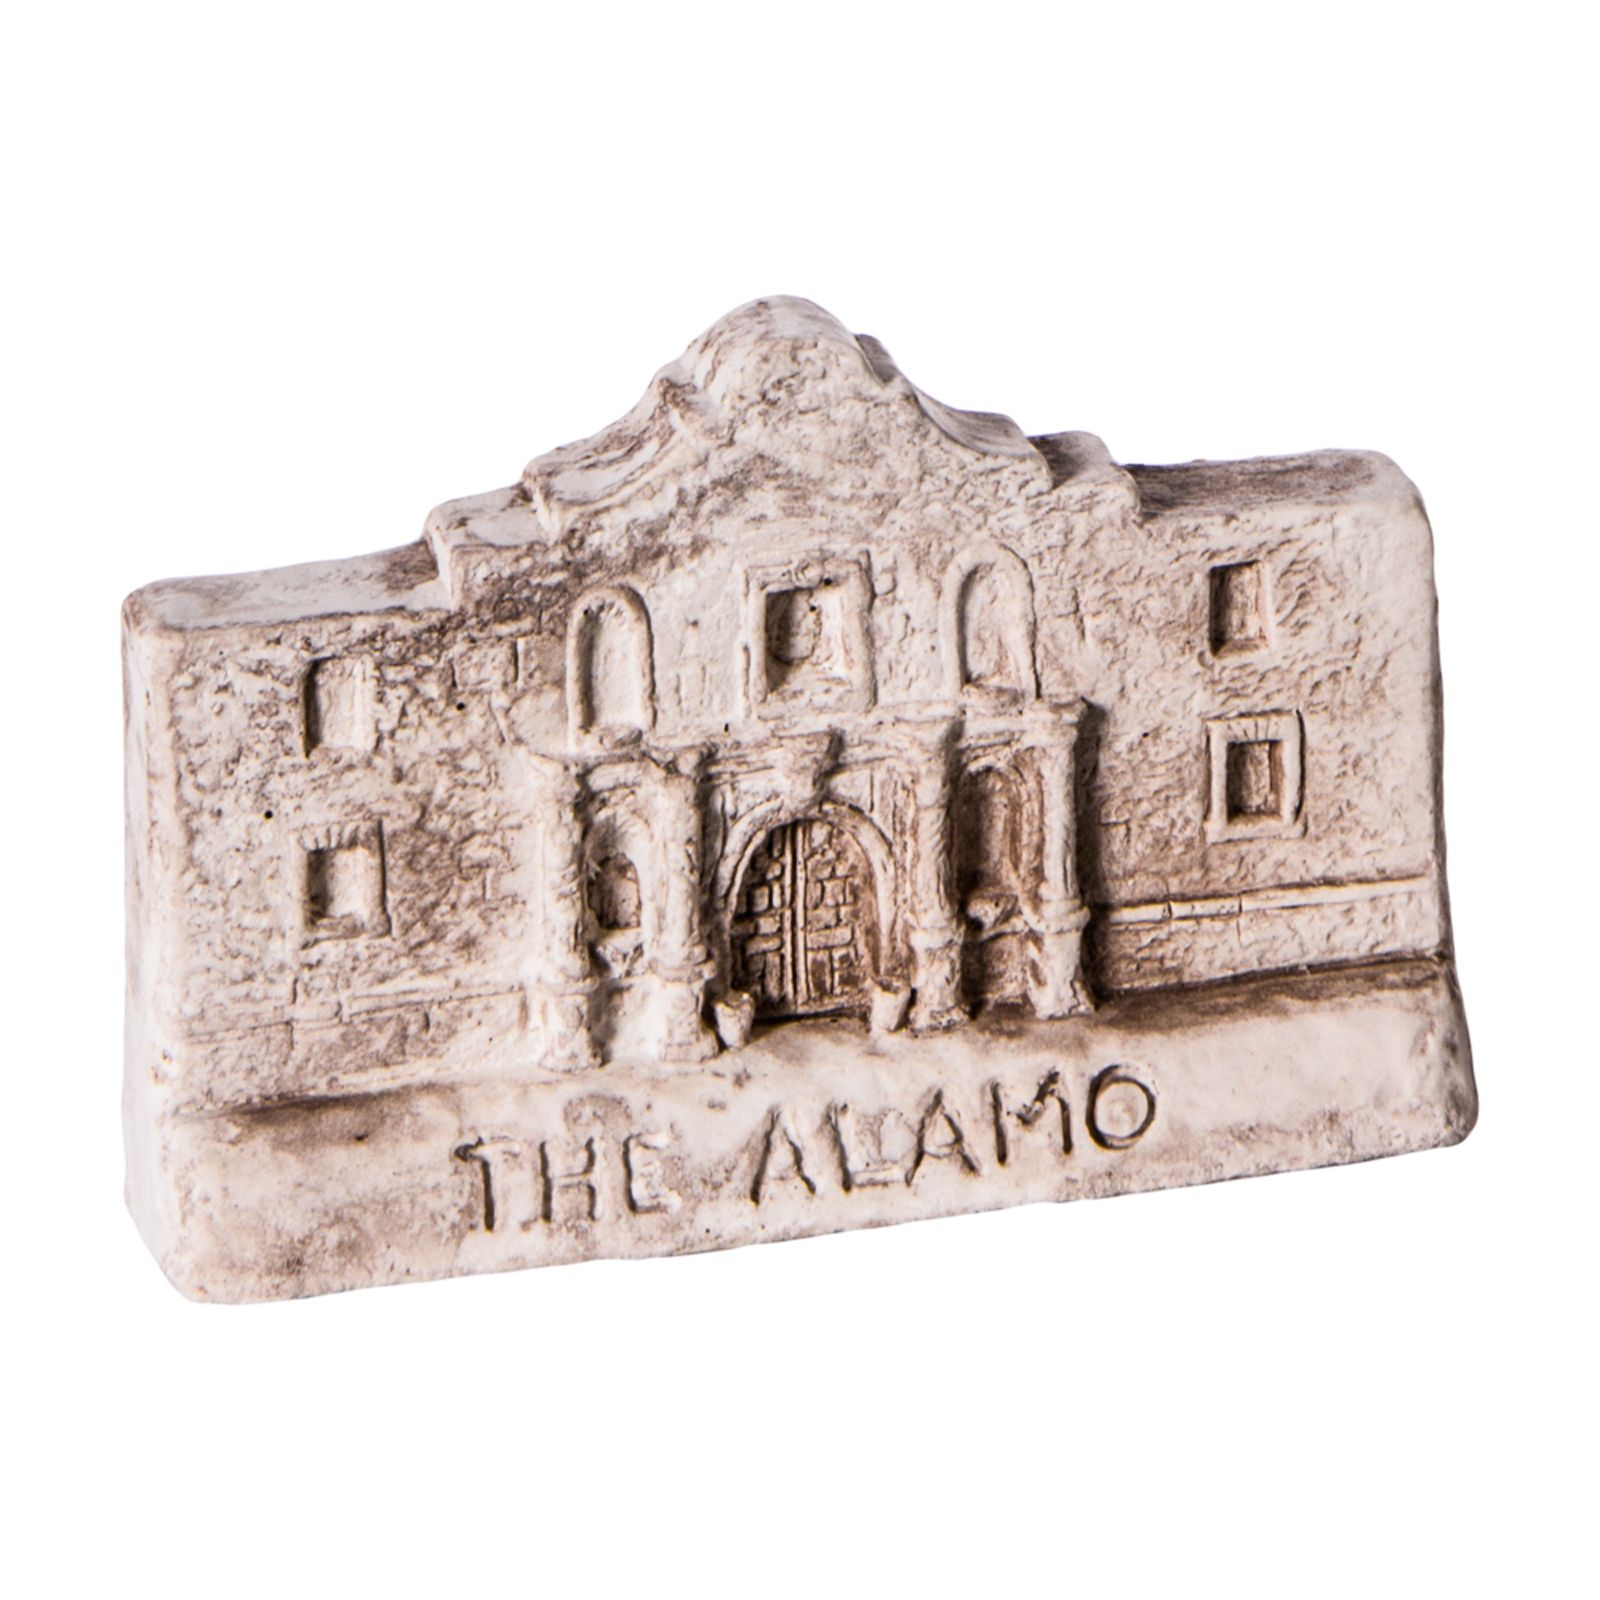 Alamo Small Clay Replica